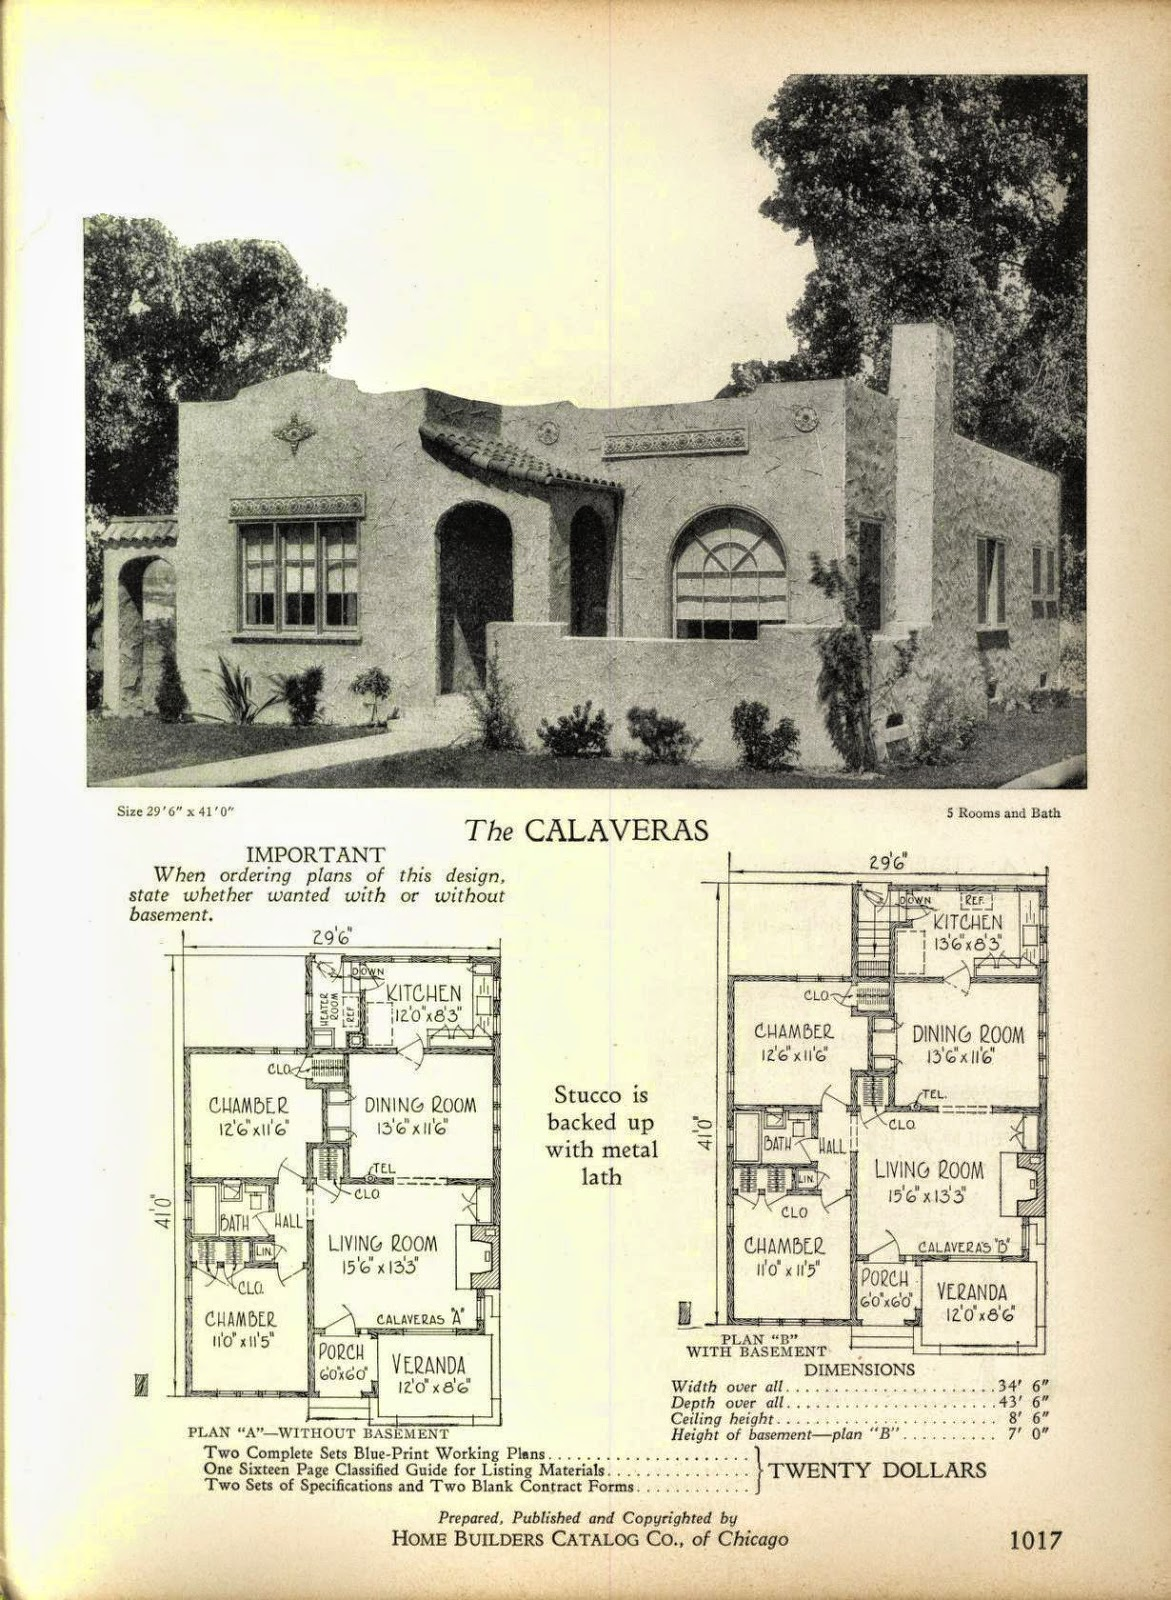 Once Again, Even More Art Deco House Plans! | Art Deco Resource